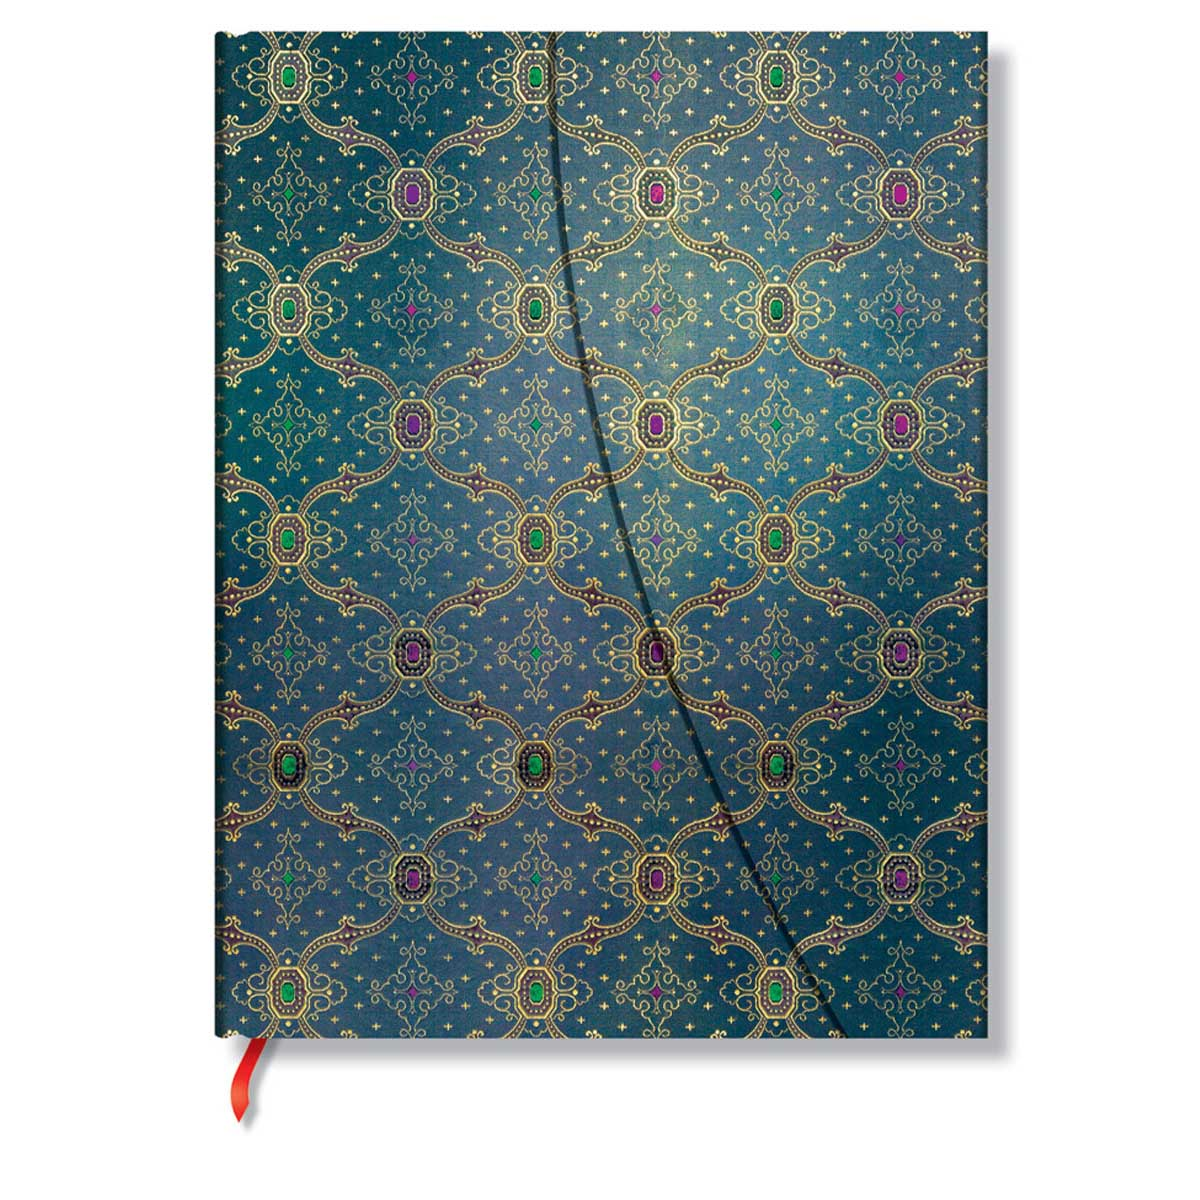 Paperblanks French Ornate Bleu Ultra 7 x 9 Inch Lined Journal